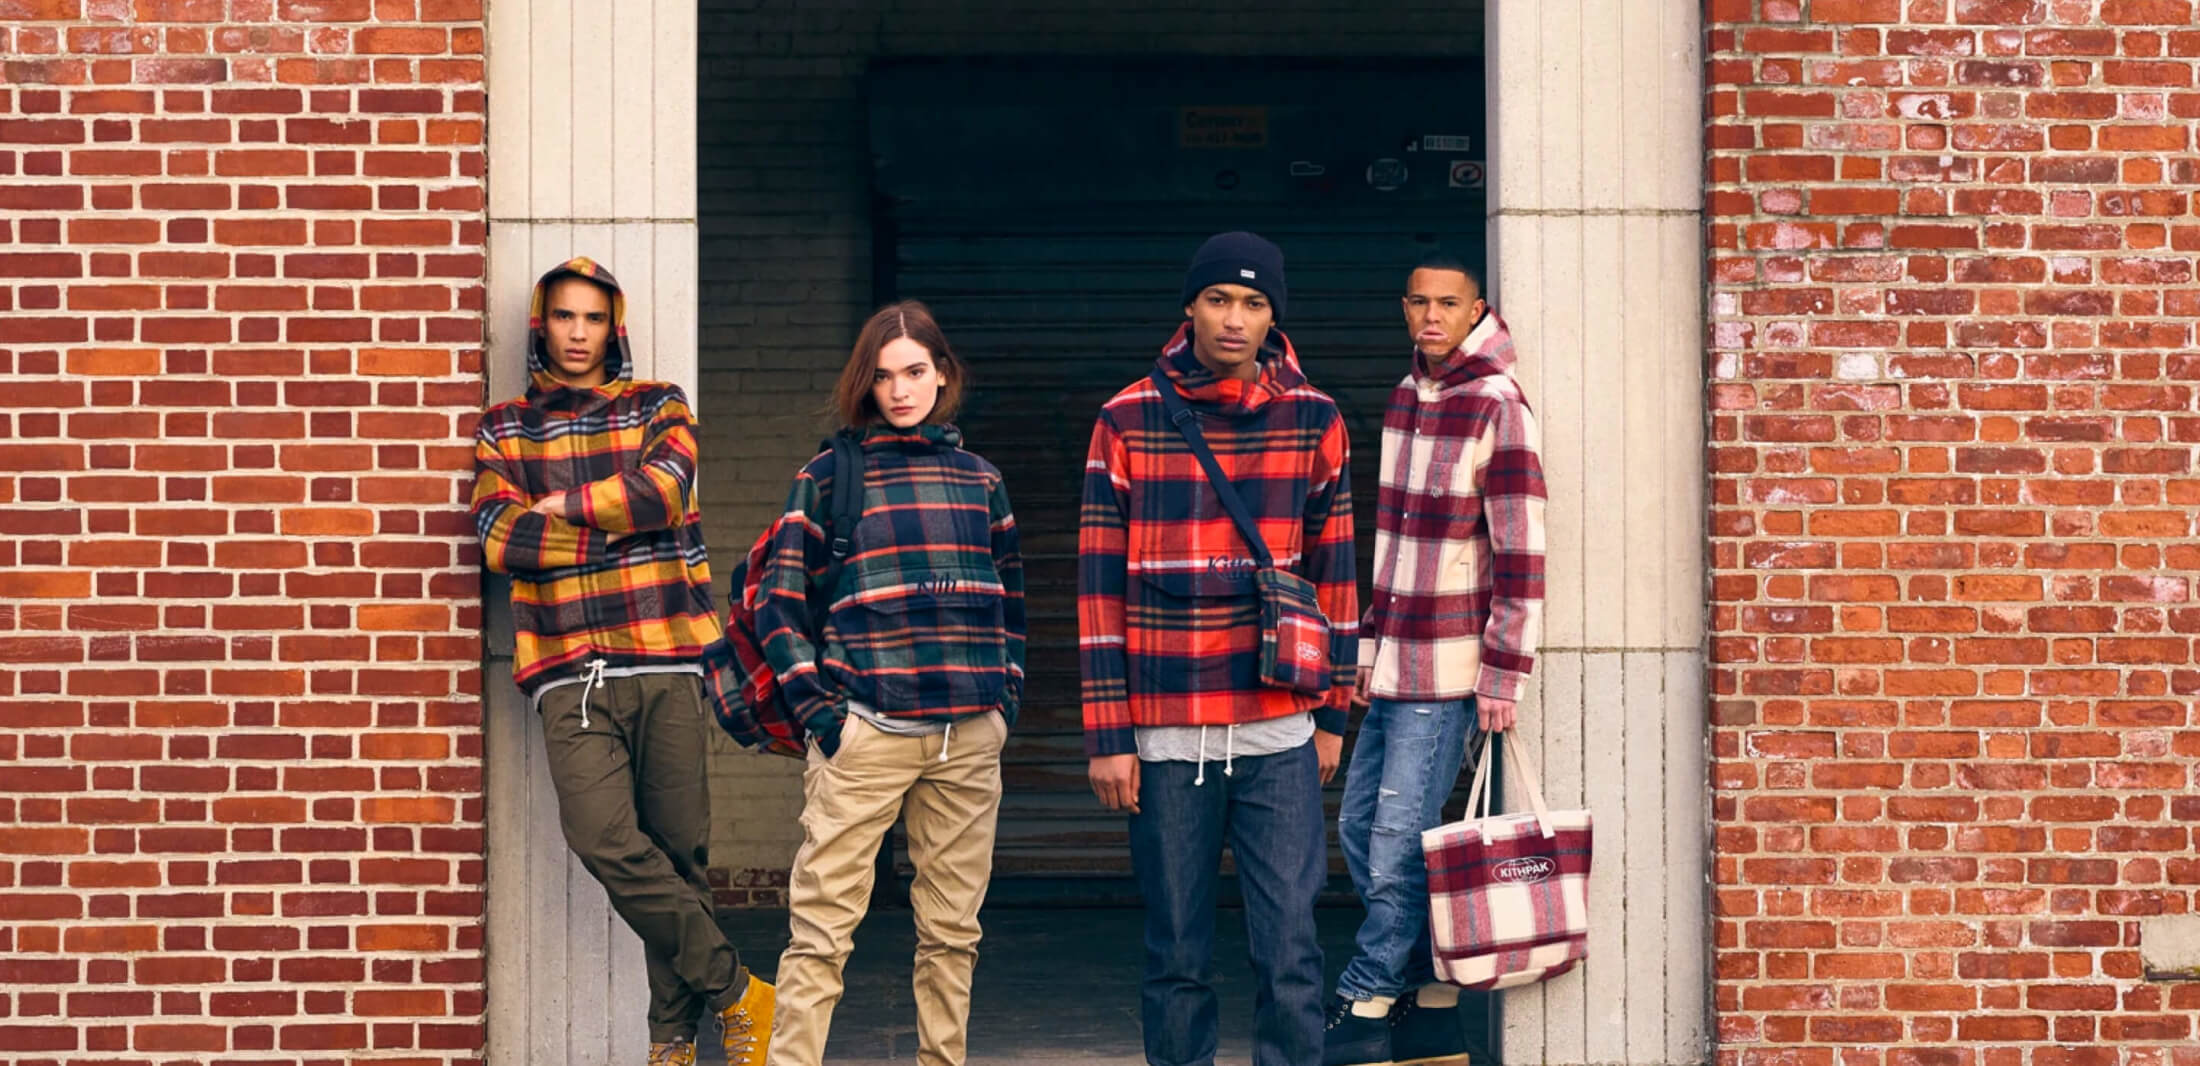 group of young people outside building wearing kith clothes